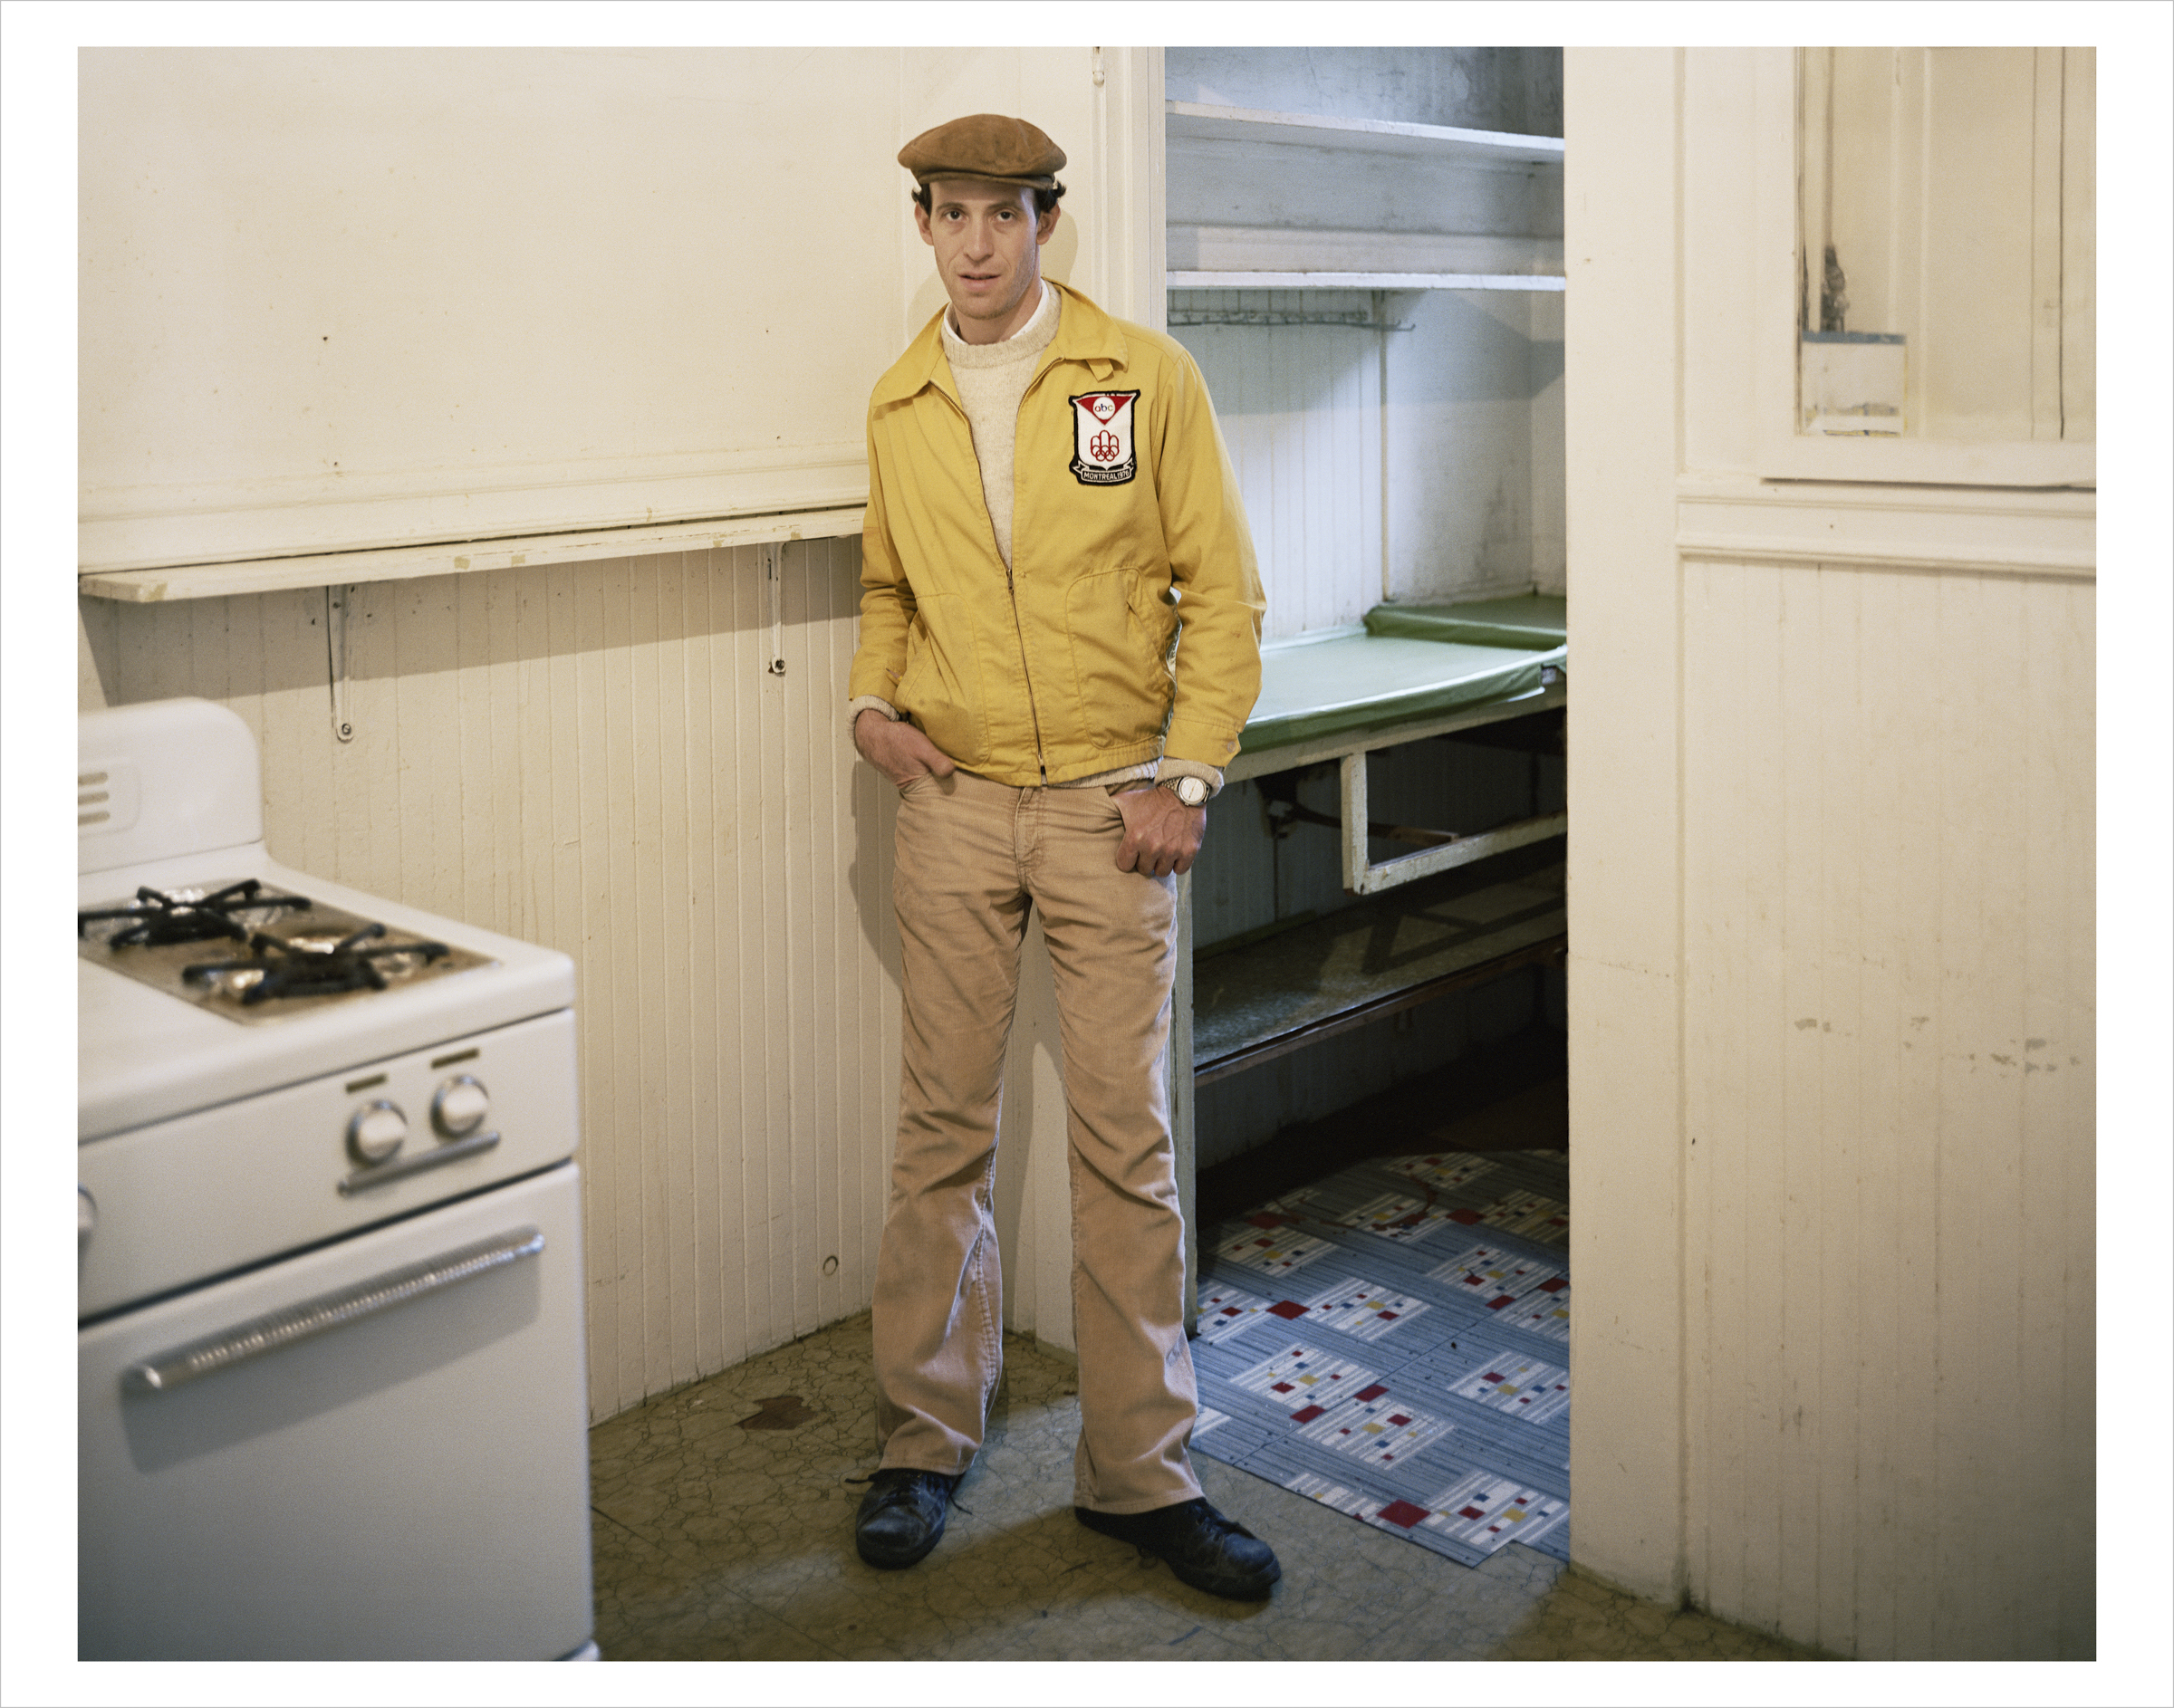 Jeffery Kreiger, new landlord, 152 Russ Street, 1980 Archival Pigment Print, 2016 16 x 20 inches, edition of 5 20 x 24 inches, edition of 2 30 x 40 inches, edition of 2